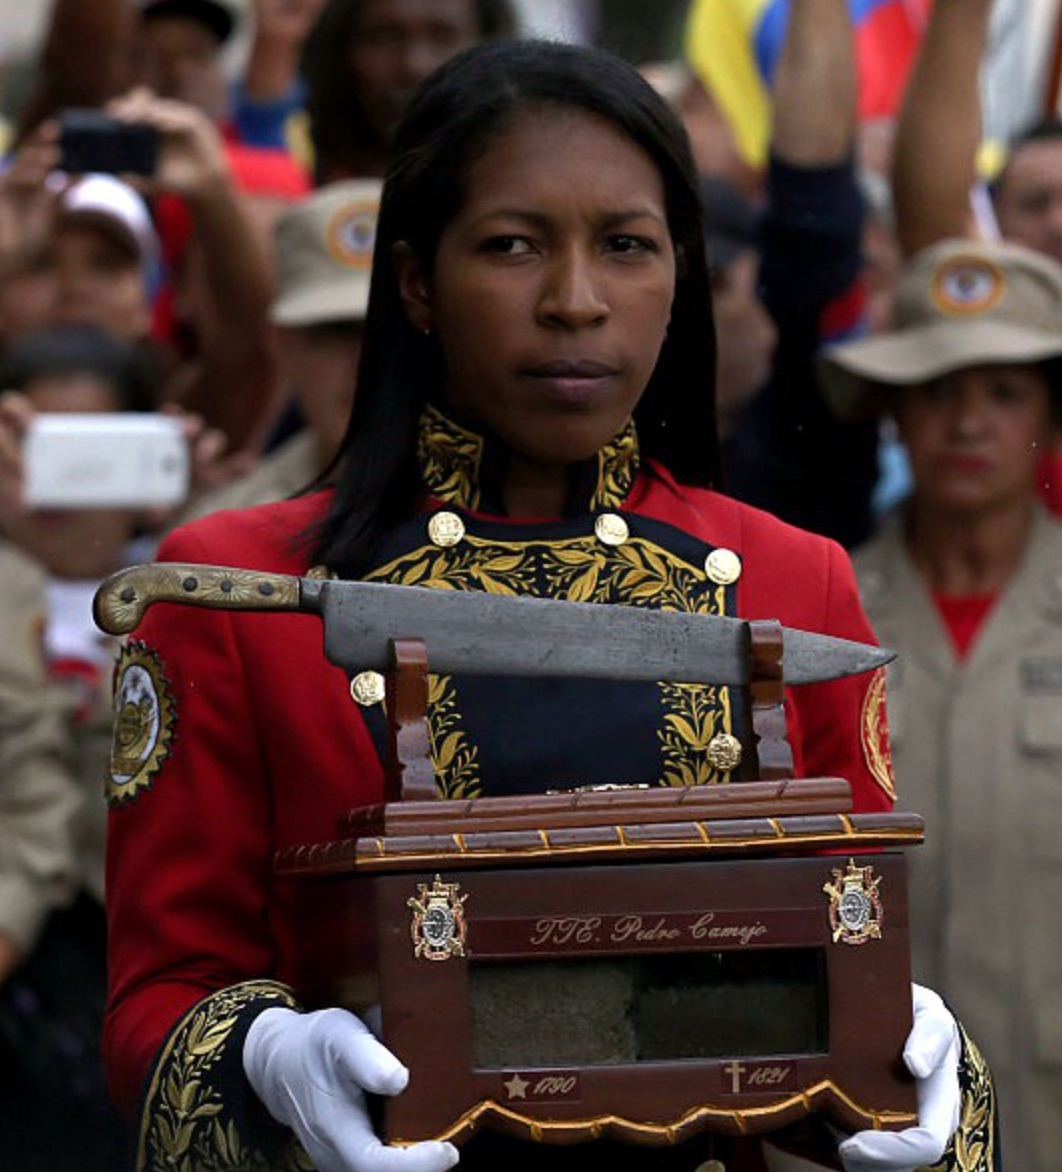 The symbolic casket arrives in Caracas seven days after it set out from Negro Primero's birthplace in Apure (Albaciudad)